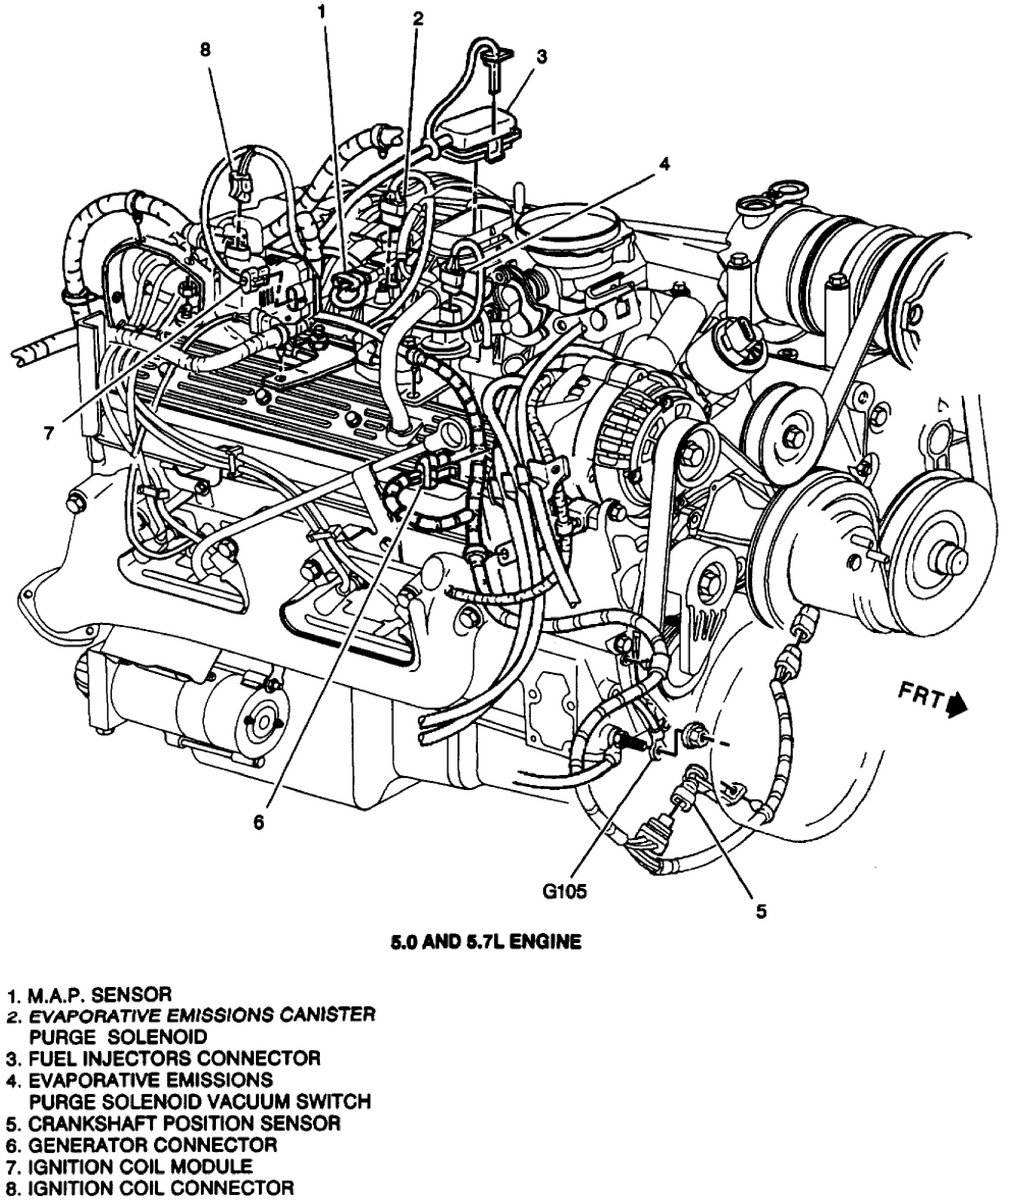 Chevrolet 2 2 Liter Engine Diagram | Wiring LibraryWiring Library